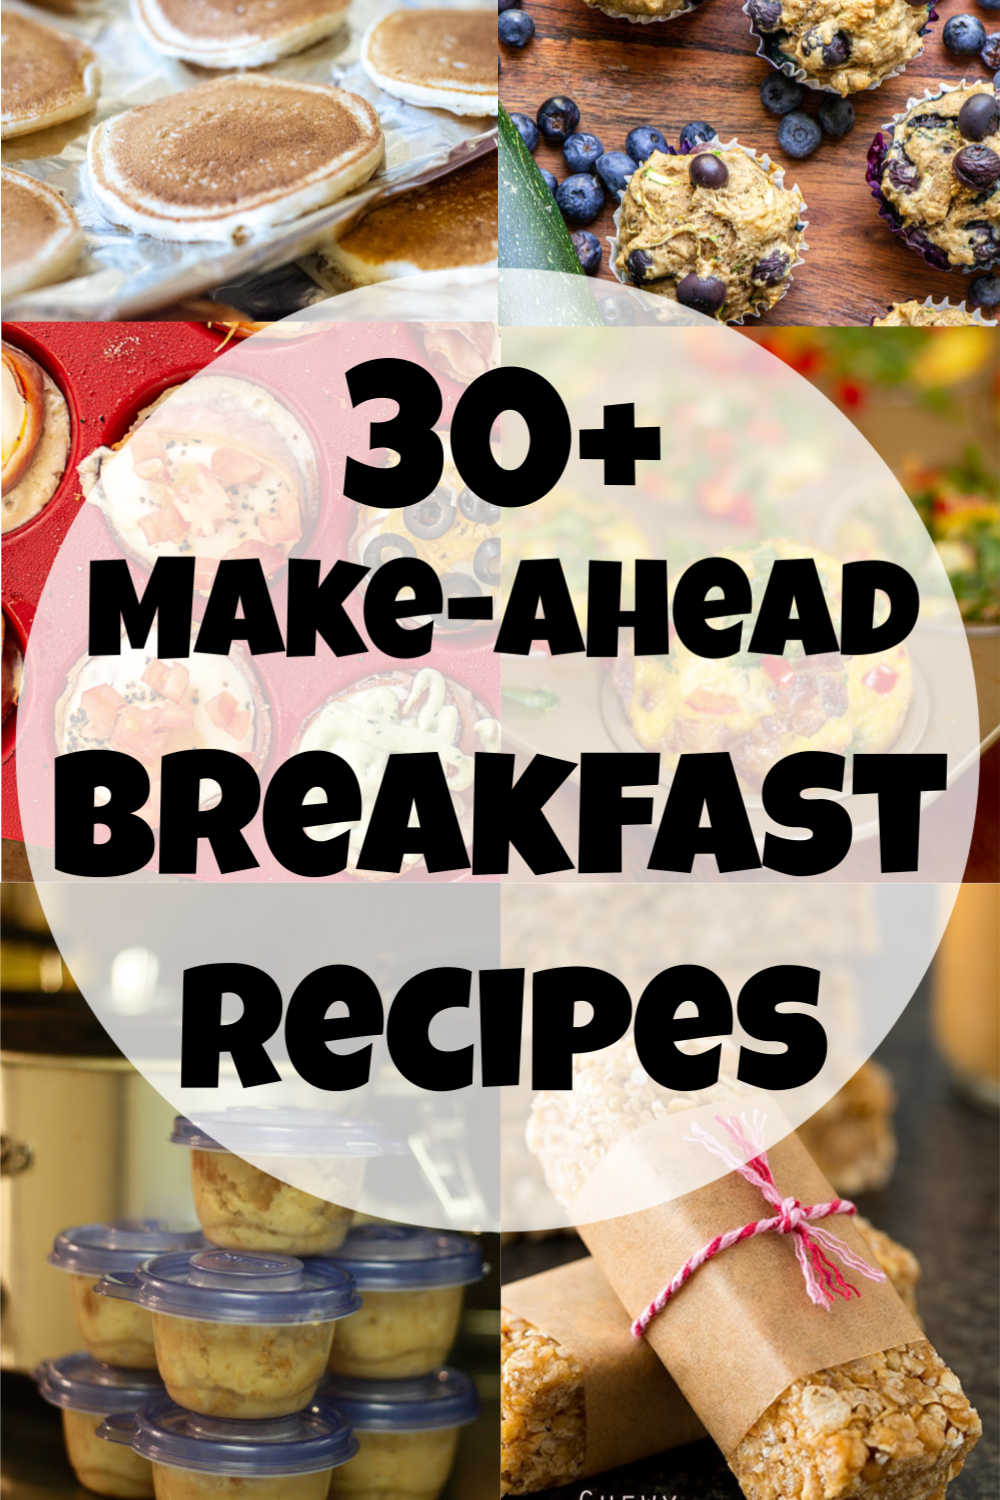 More than 30 breakfast ideas for busy families on the go! Create these make ahead breakfasts to save money, eat healthy and stop eating out. Healthy and delicious! #mealprep #mealprepbreakfast #onthego #makeahead